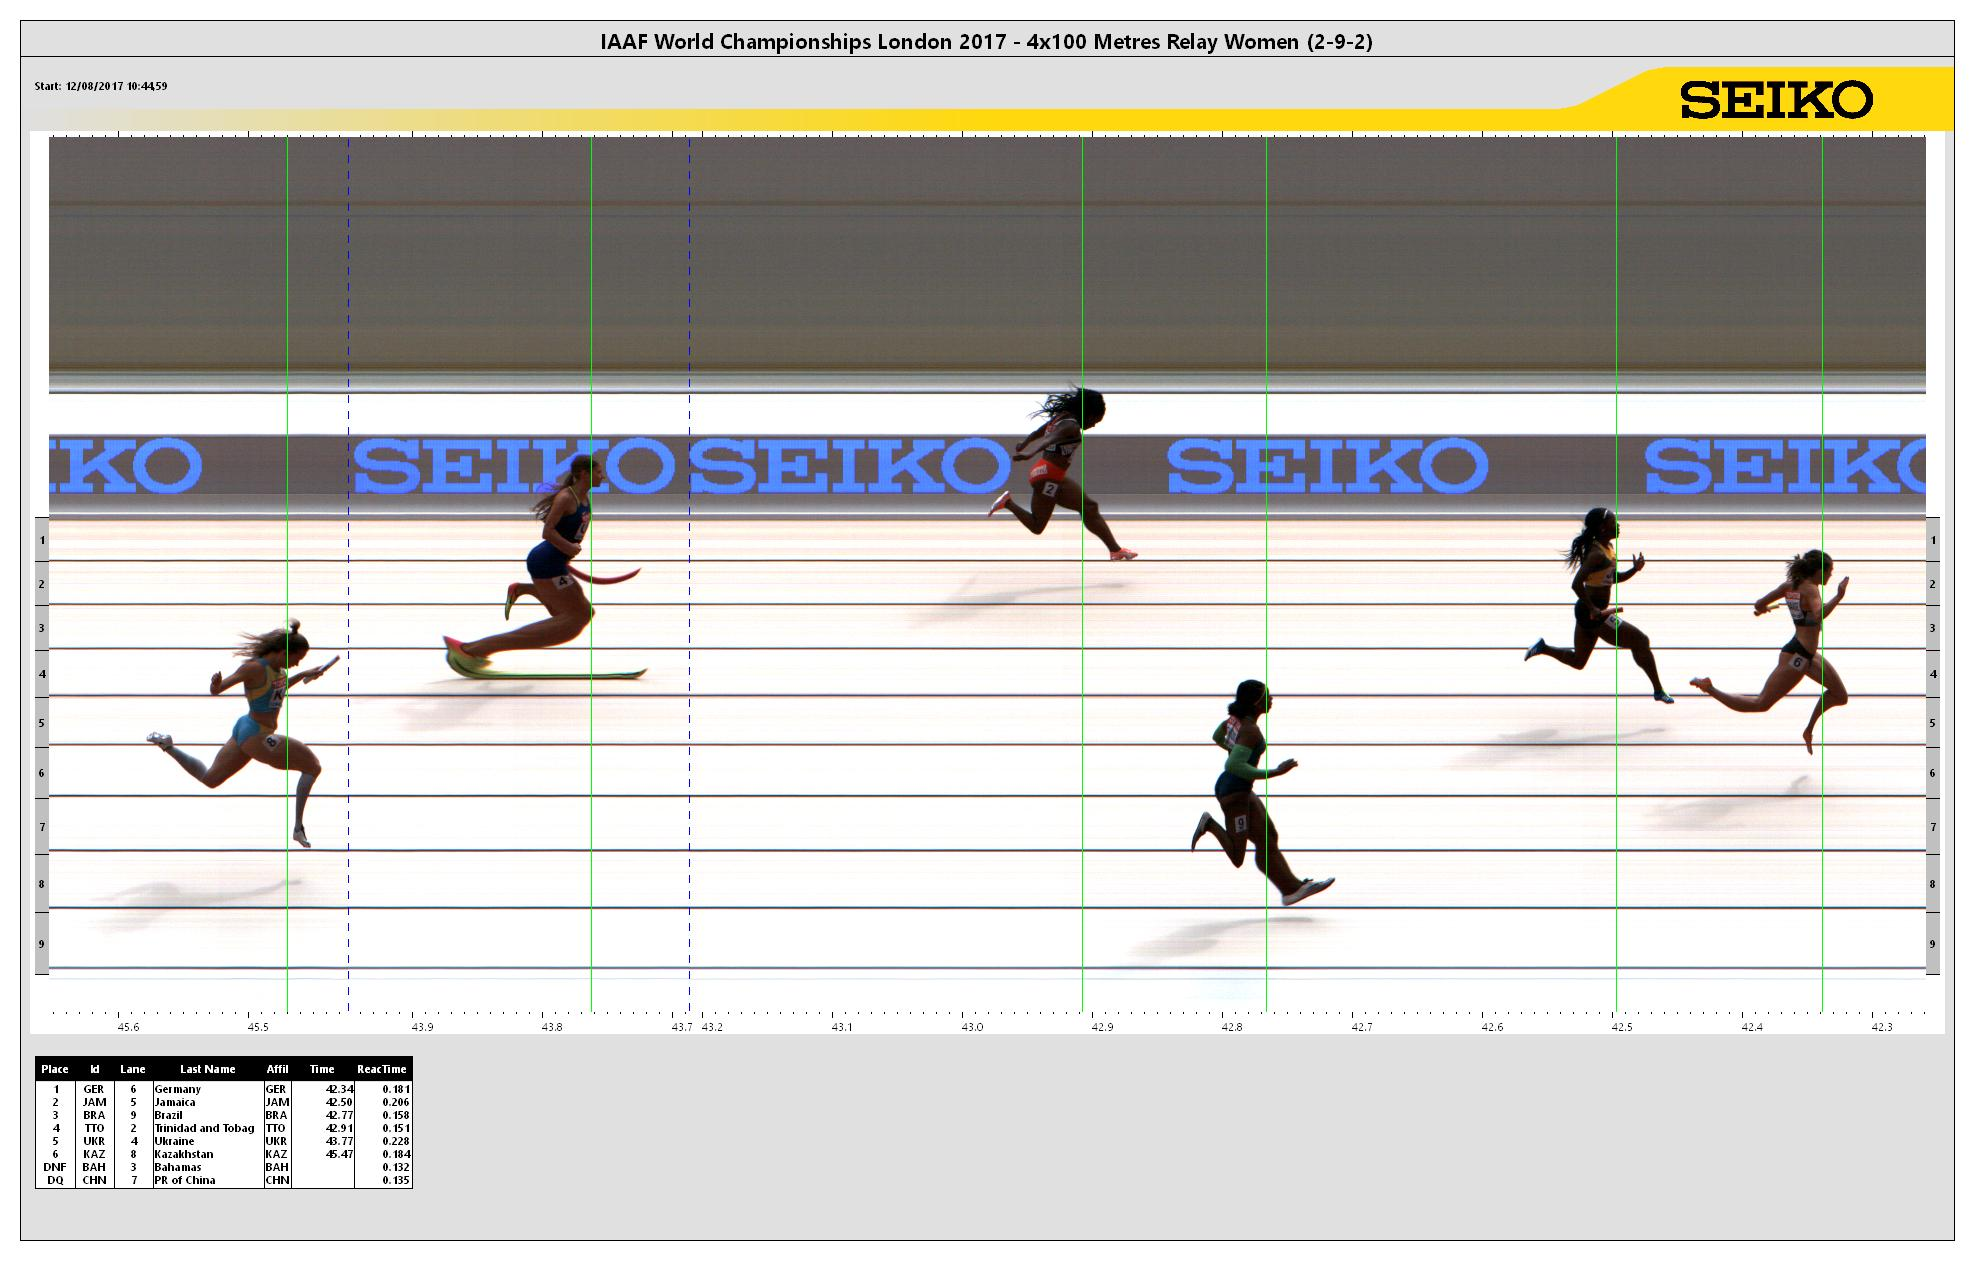 4x100 Metres Relay Result Iaaf World Championships